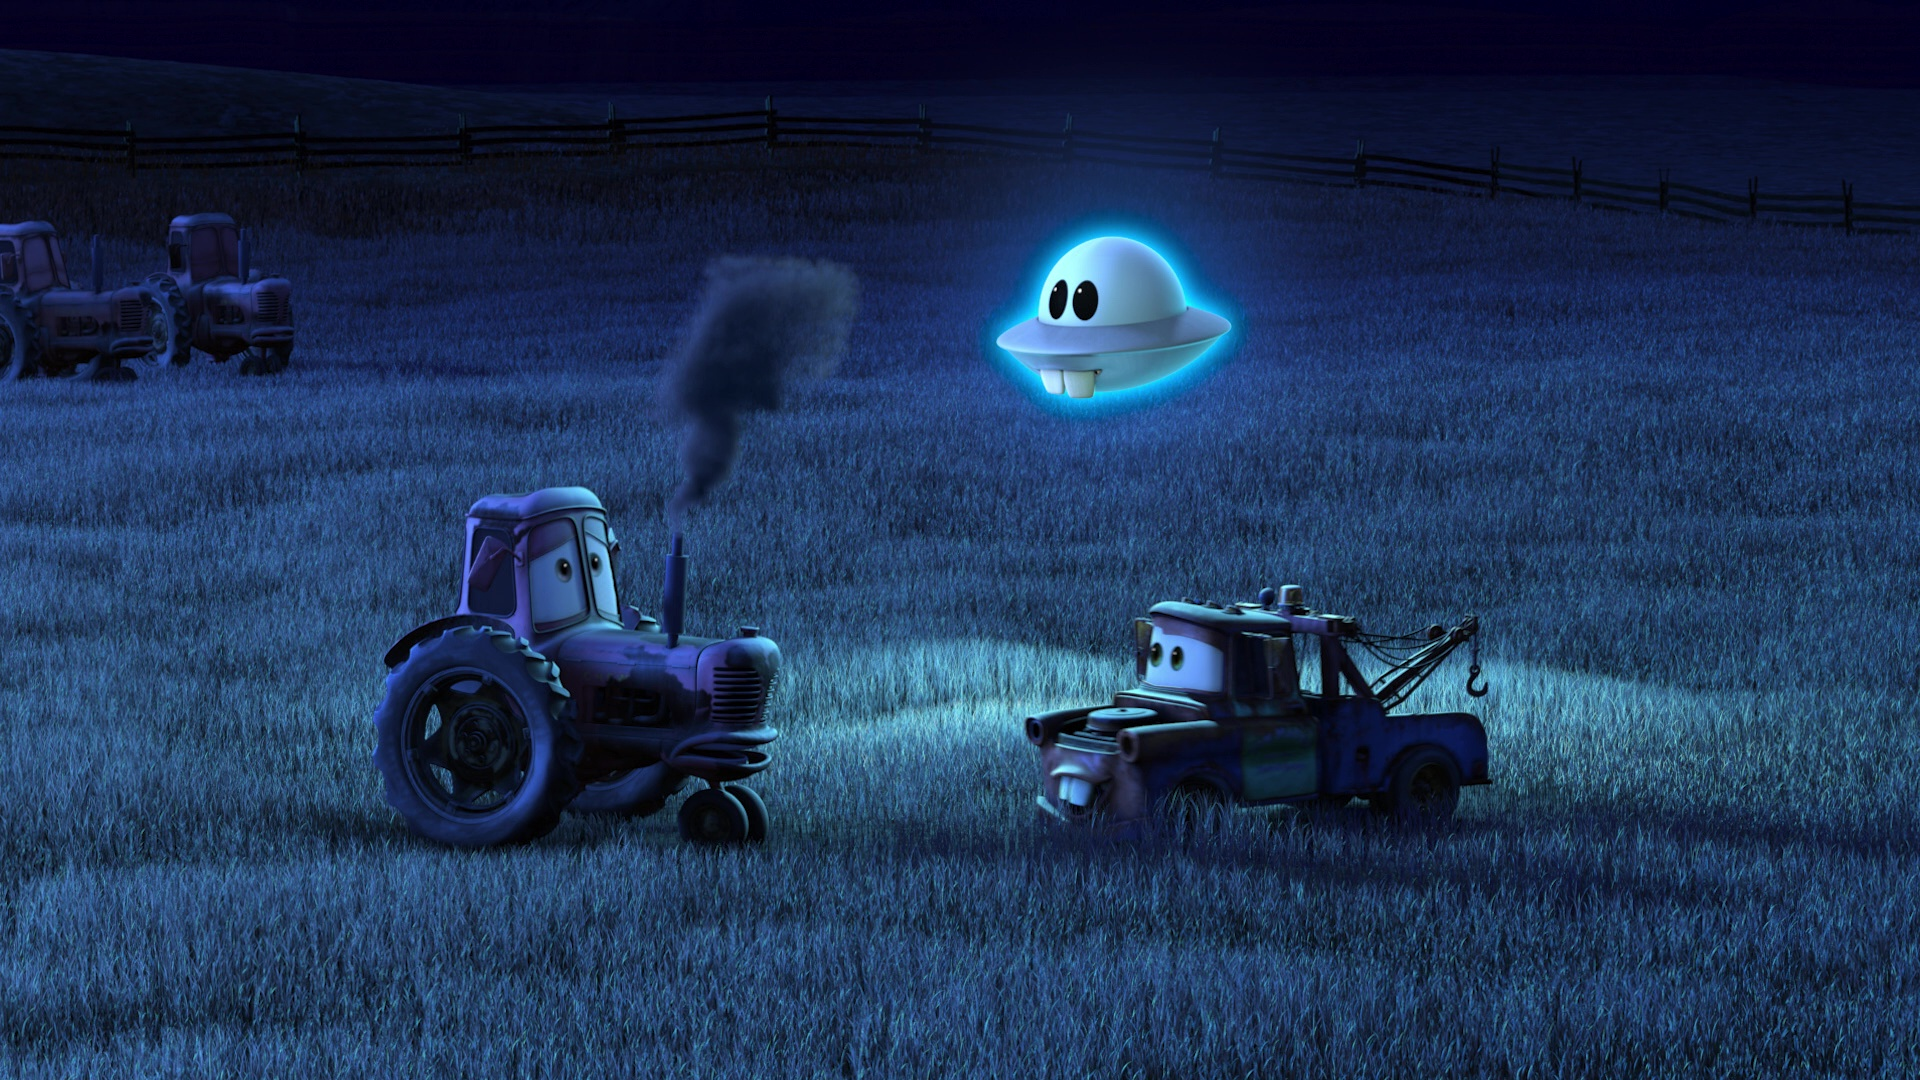 pixar disney personnage character cars toon martin volant non identifié Unidentified Flying Mater marteau matorpixar disney personnage character cars toon martin volant non identifié Unidentified Flying Mater marteau mator